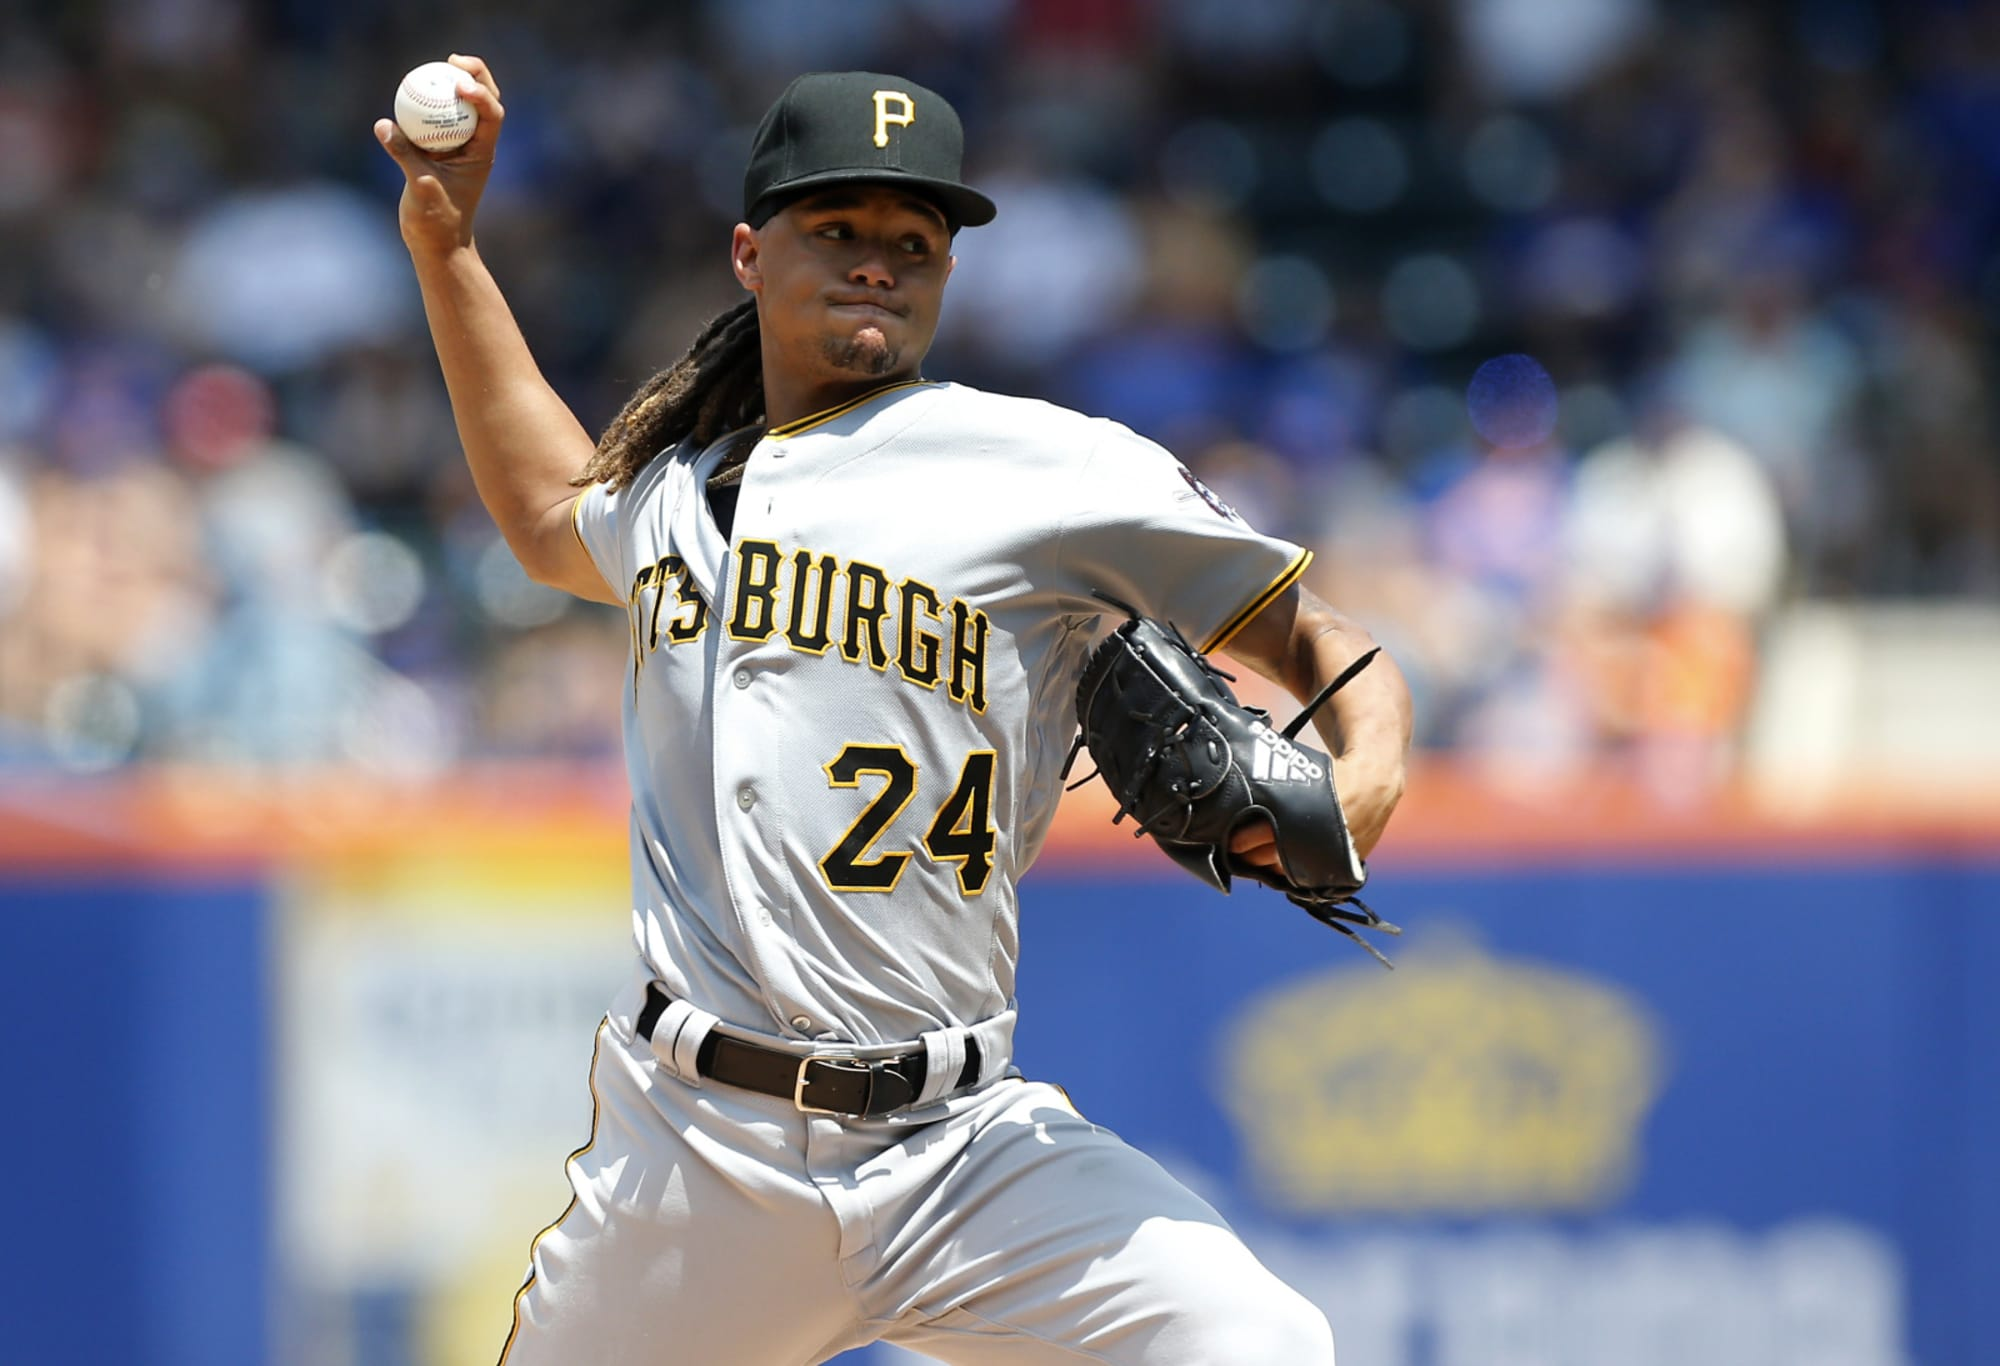 Pittsburgh Pirates: Chris Archer Trade Four Years Later